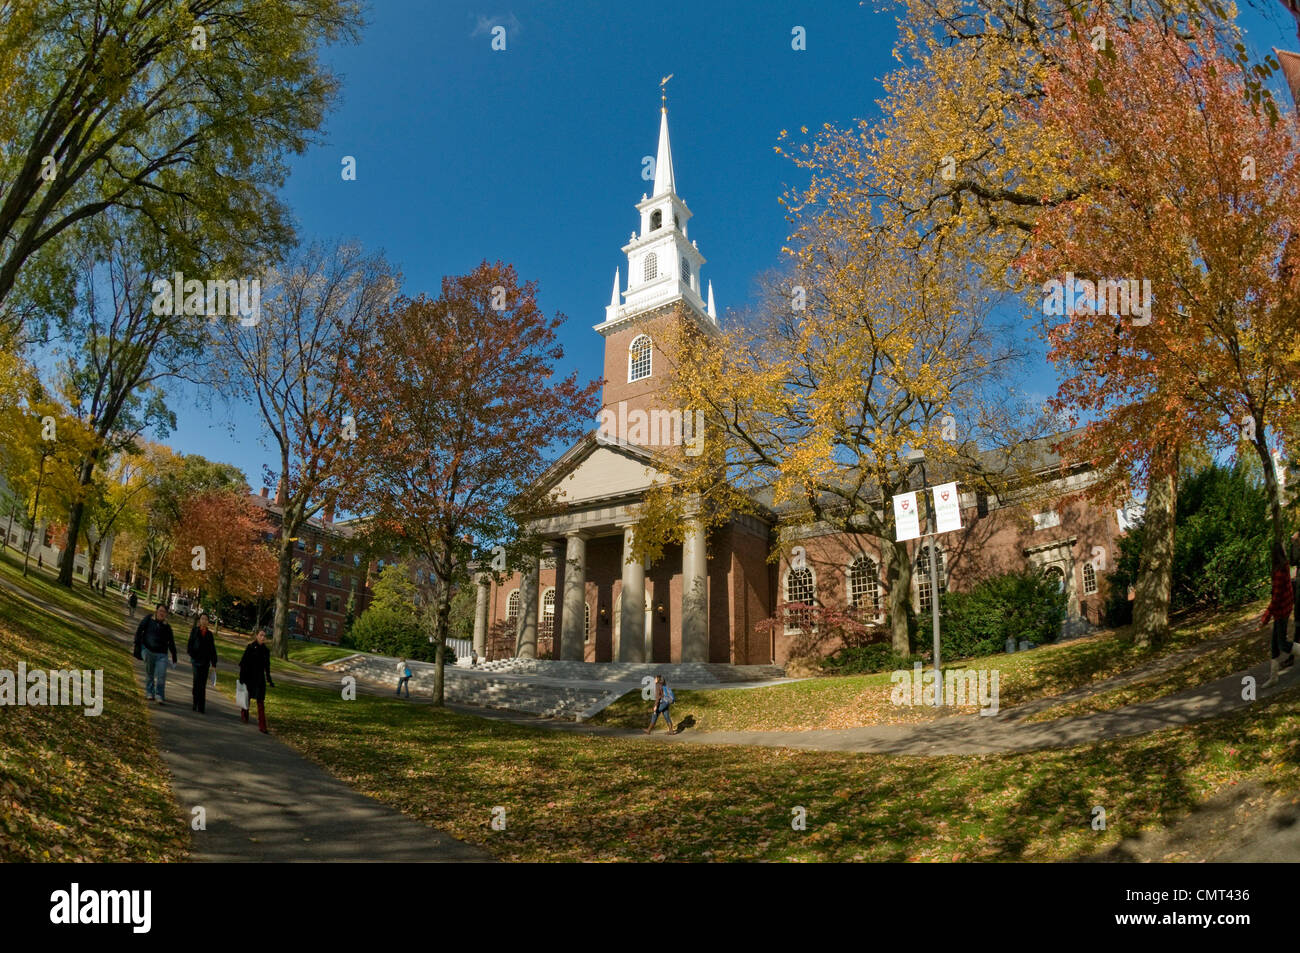 Harvard University - Memorial Church on the Harvard campus, Cambridge, Massachusetts, USA - Stock Image